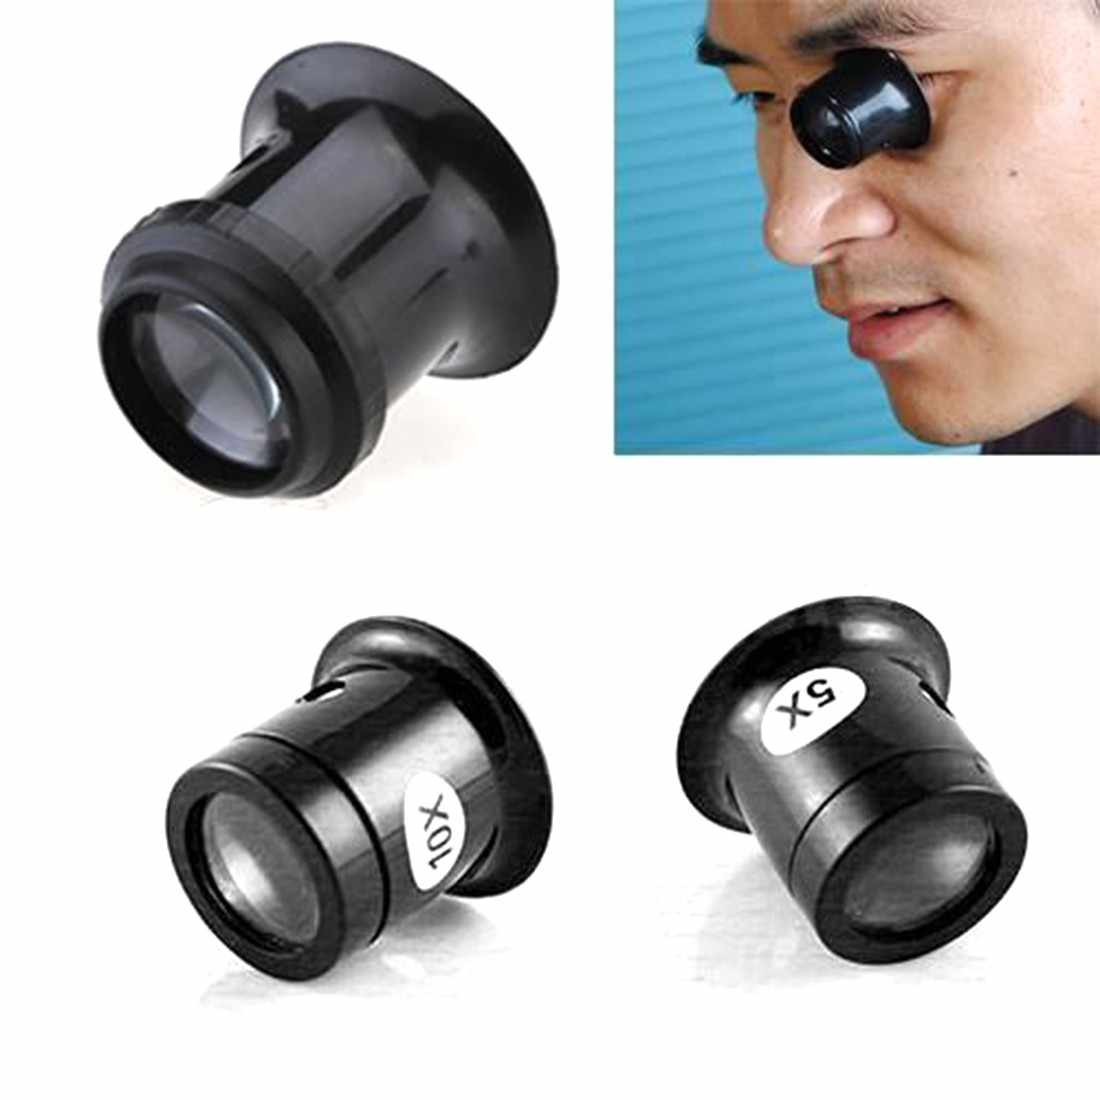 Monocular Magnifying Glass 5X/10X Portable Loupe Lens Jeweler Watch Magnifier Tool Eye Magnifier Len Repair Kit Tool